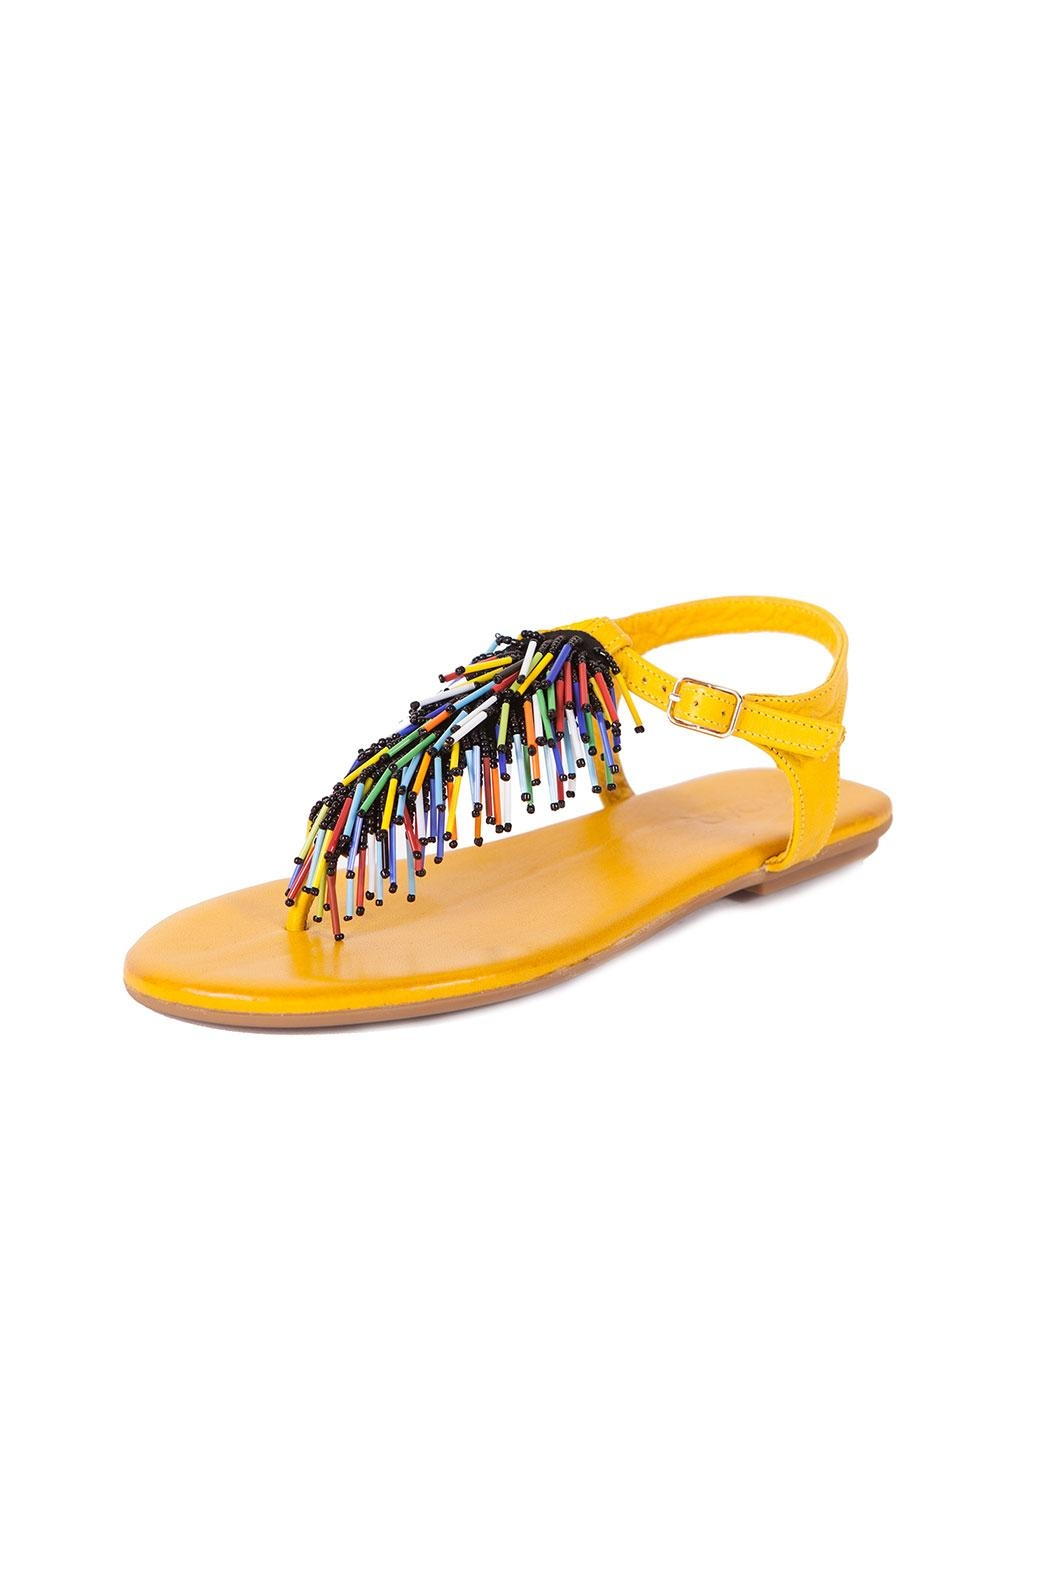 Inuovo Yellow Leather Sandals - Main Image